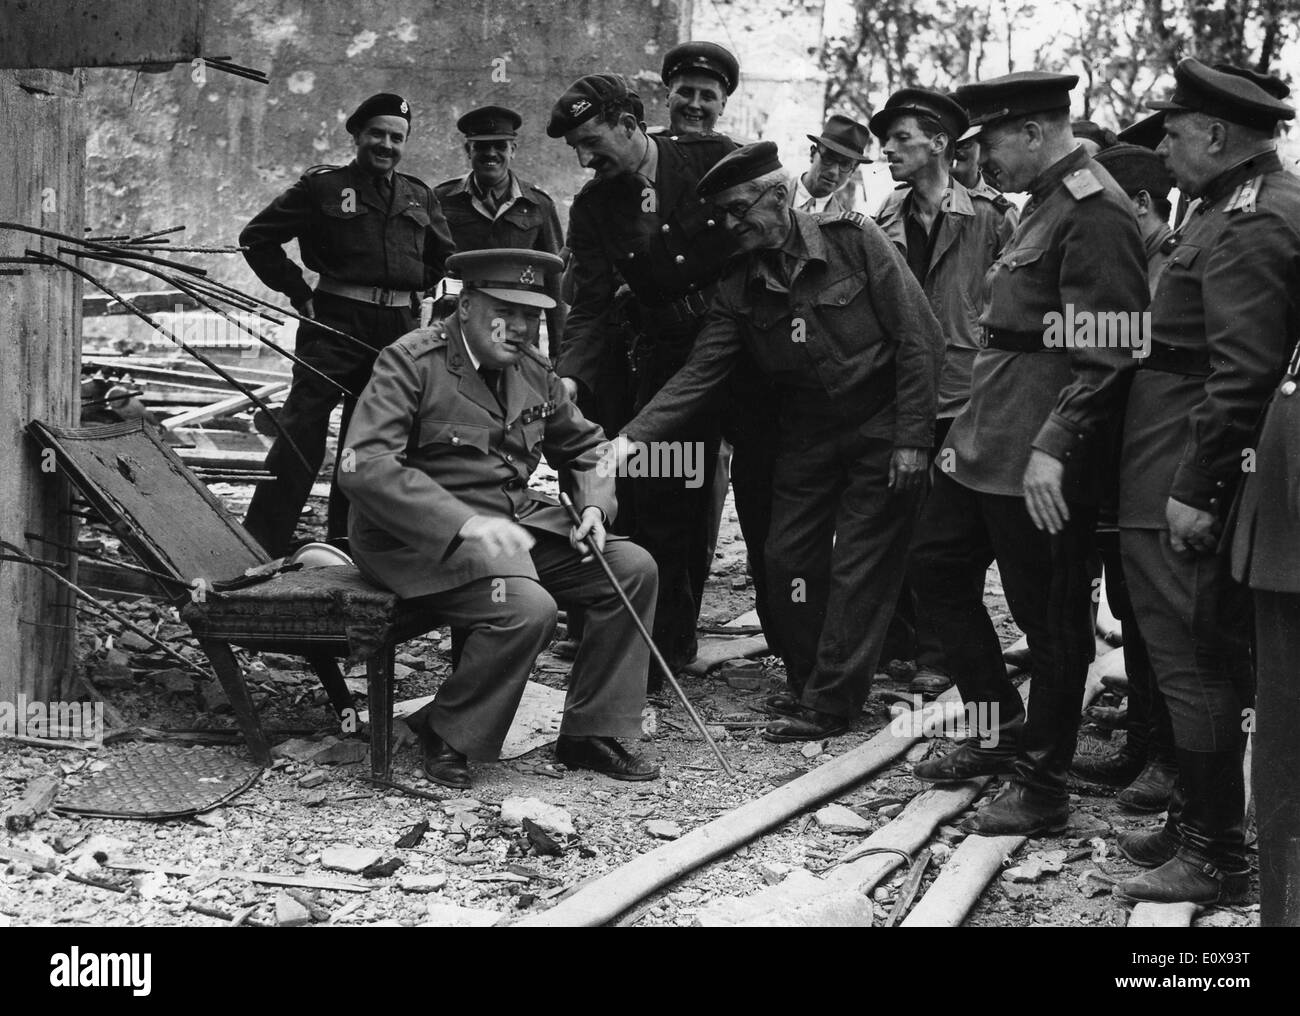 Sir Winston Churchill sits in Hitler's destroyed chair - Stock Image